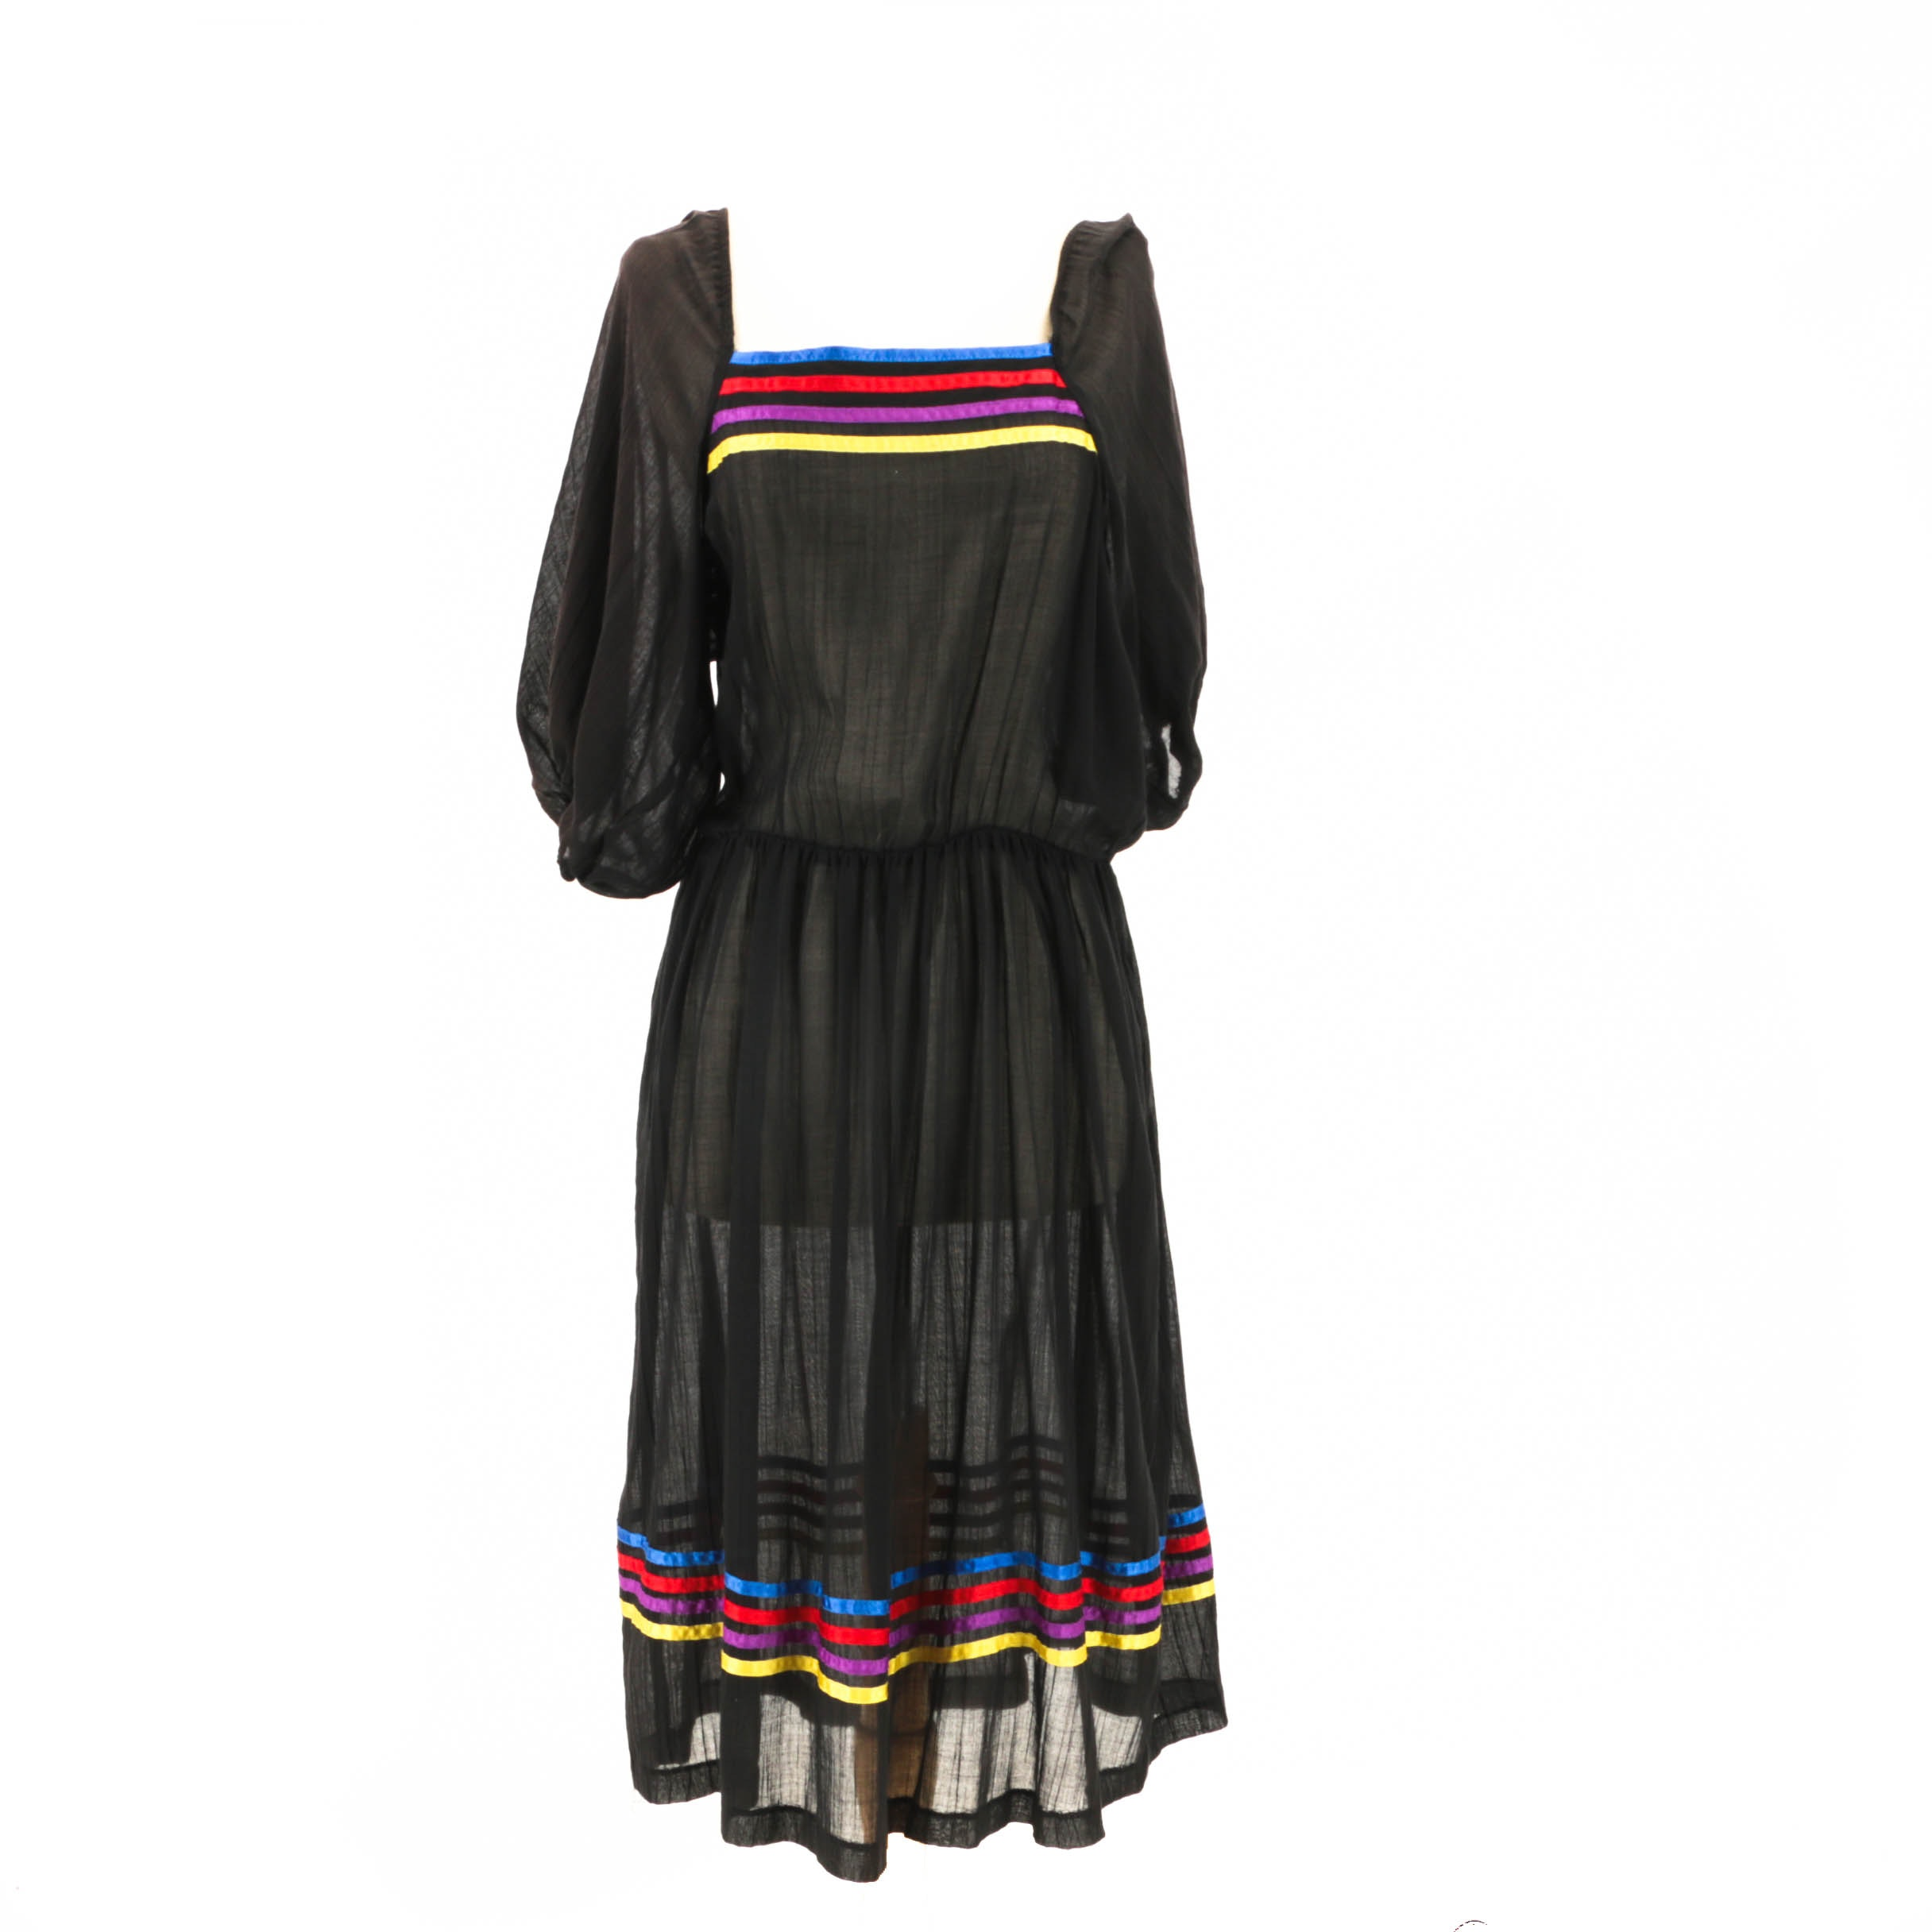 1970s Vintage Peasant Dress